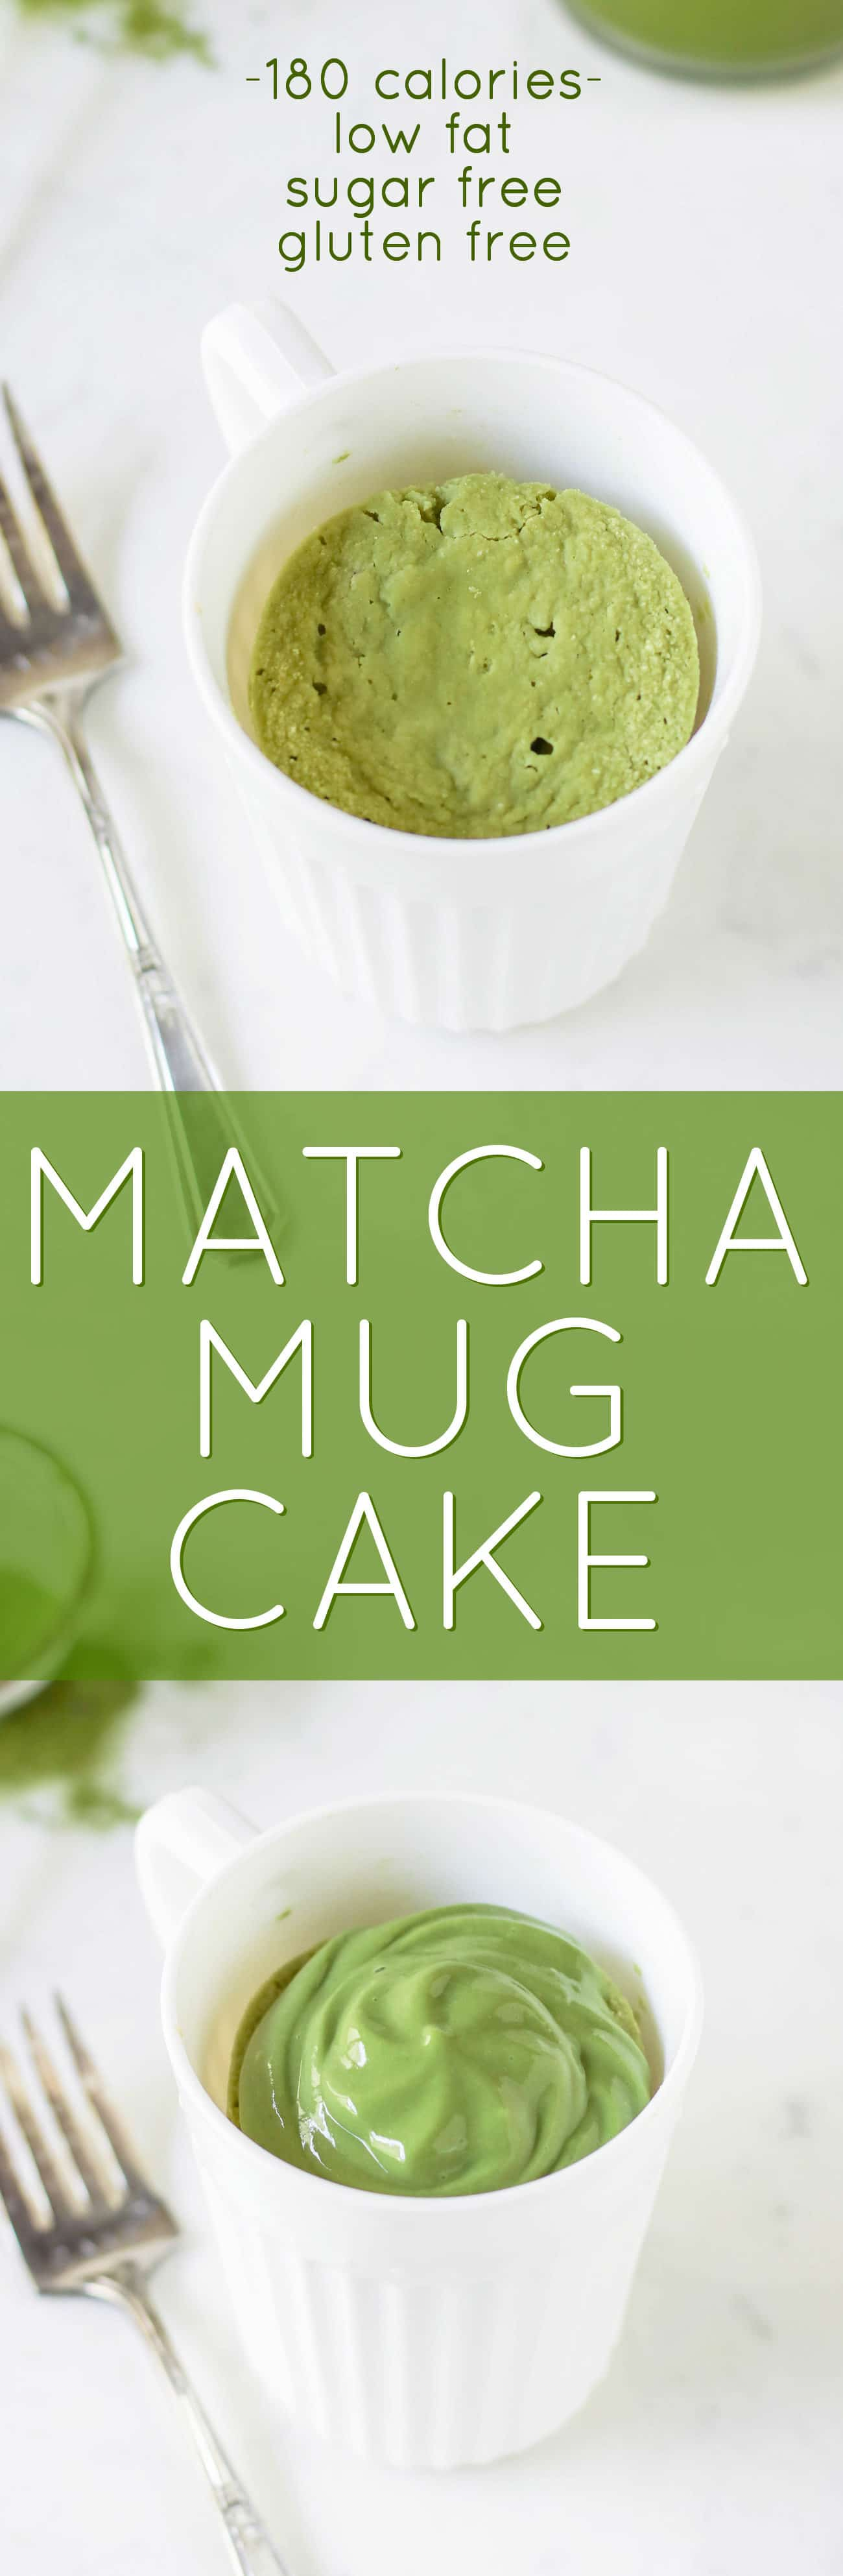 You can make this Healthy Single-Serving Matcha Microwave Cake in TWO minutes flat! This soft, springy, delicious cake makes the perfect balanced breakfast, snack, AND dessert. Plus, a Matcha Protein Frosting to top it off. This entire recipe has just 180 calories, and is sugar free, low carb, high protein, high fiber, and gluten free too! Healthy dessert recipes at the Desserts With Benefits Blog (www.DessertsWithBenefits.com)